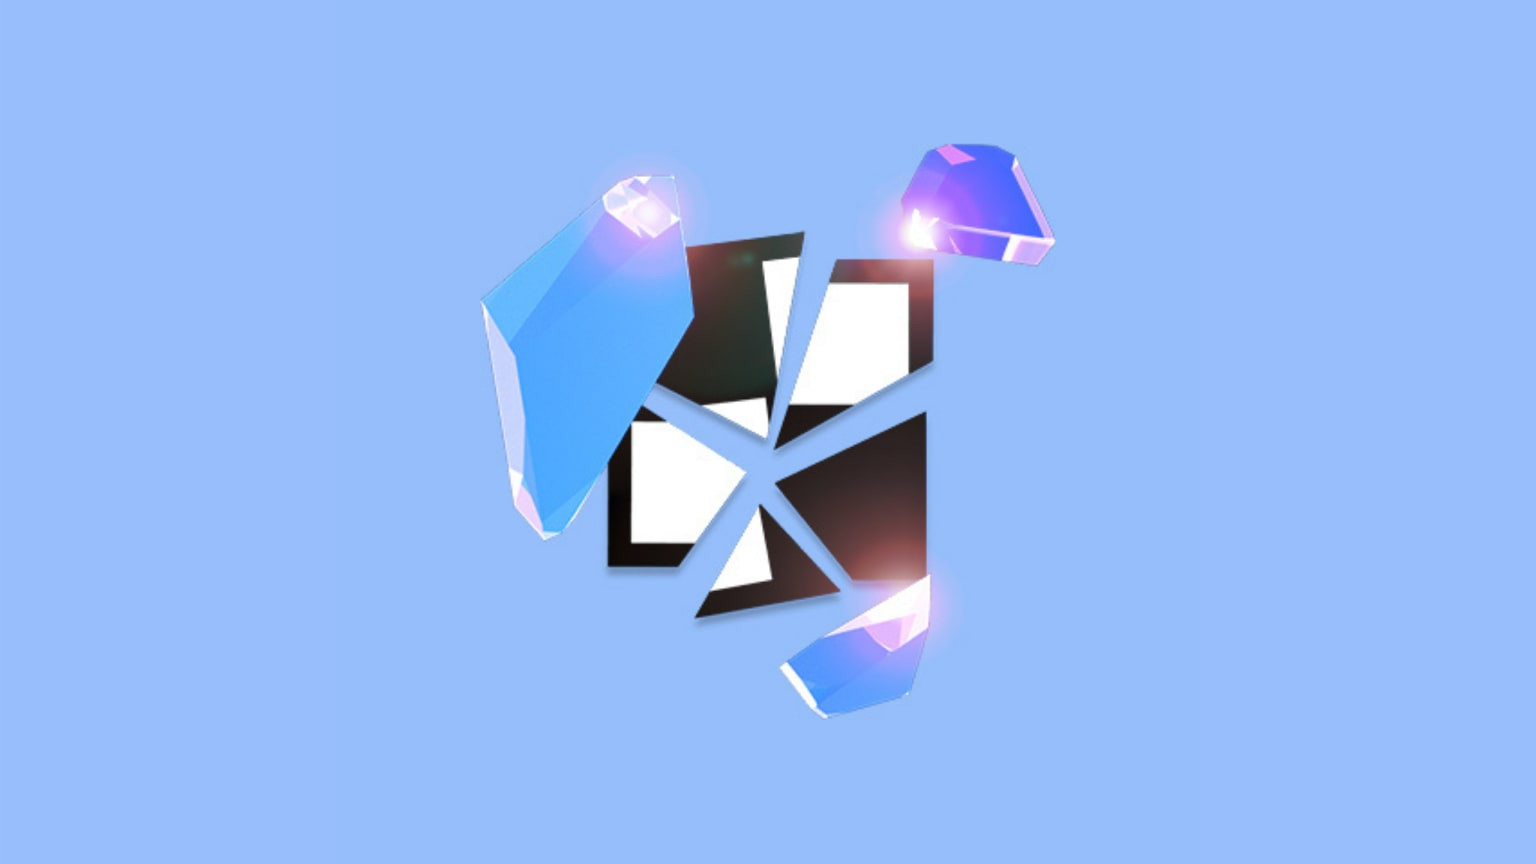 Shattered Crosswords - NYT's First AR Game